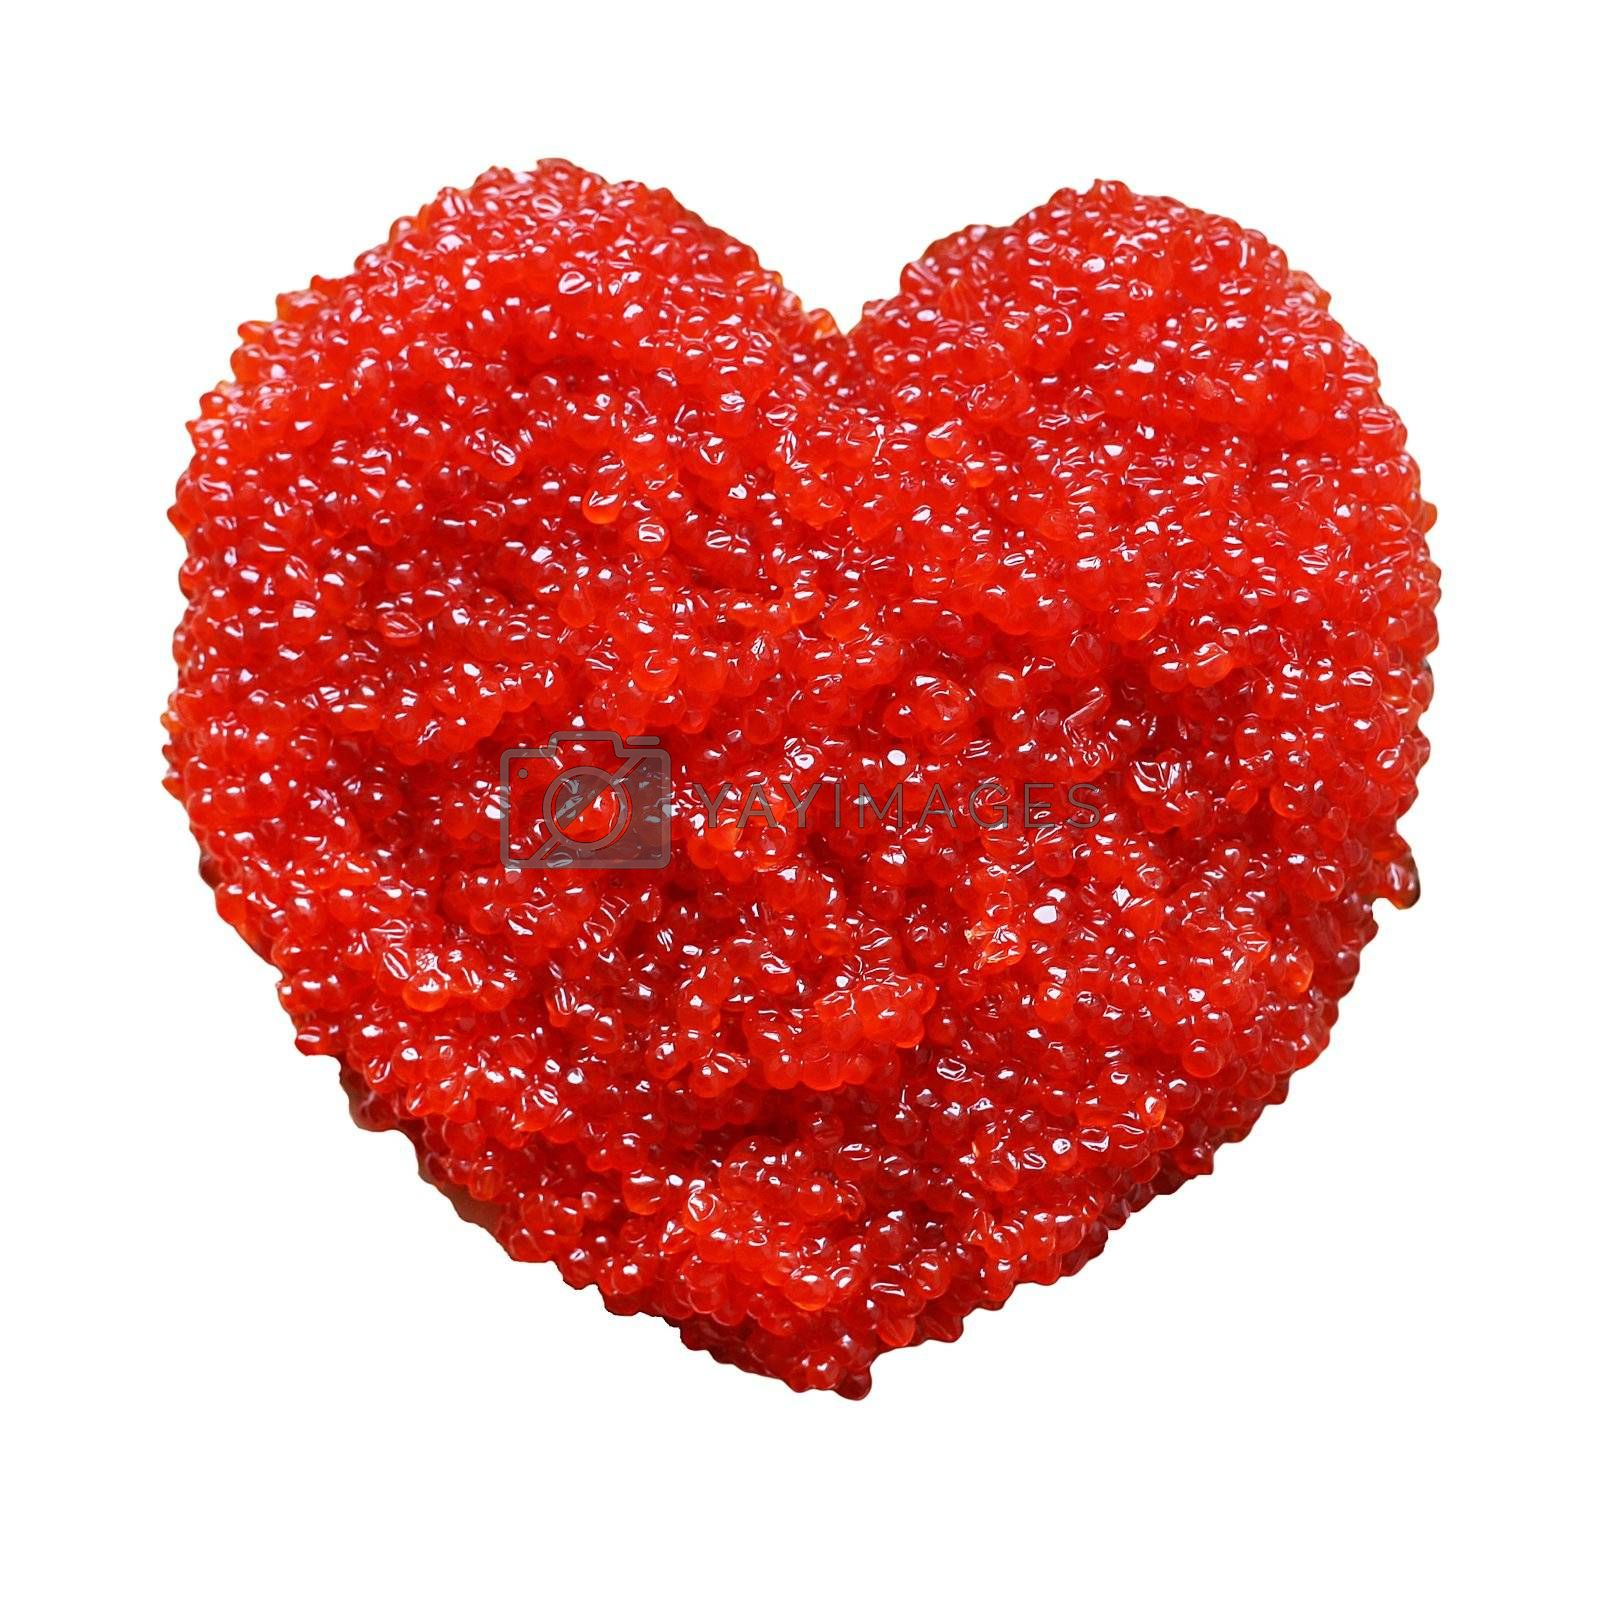 A lot of red caviar in form of heart